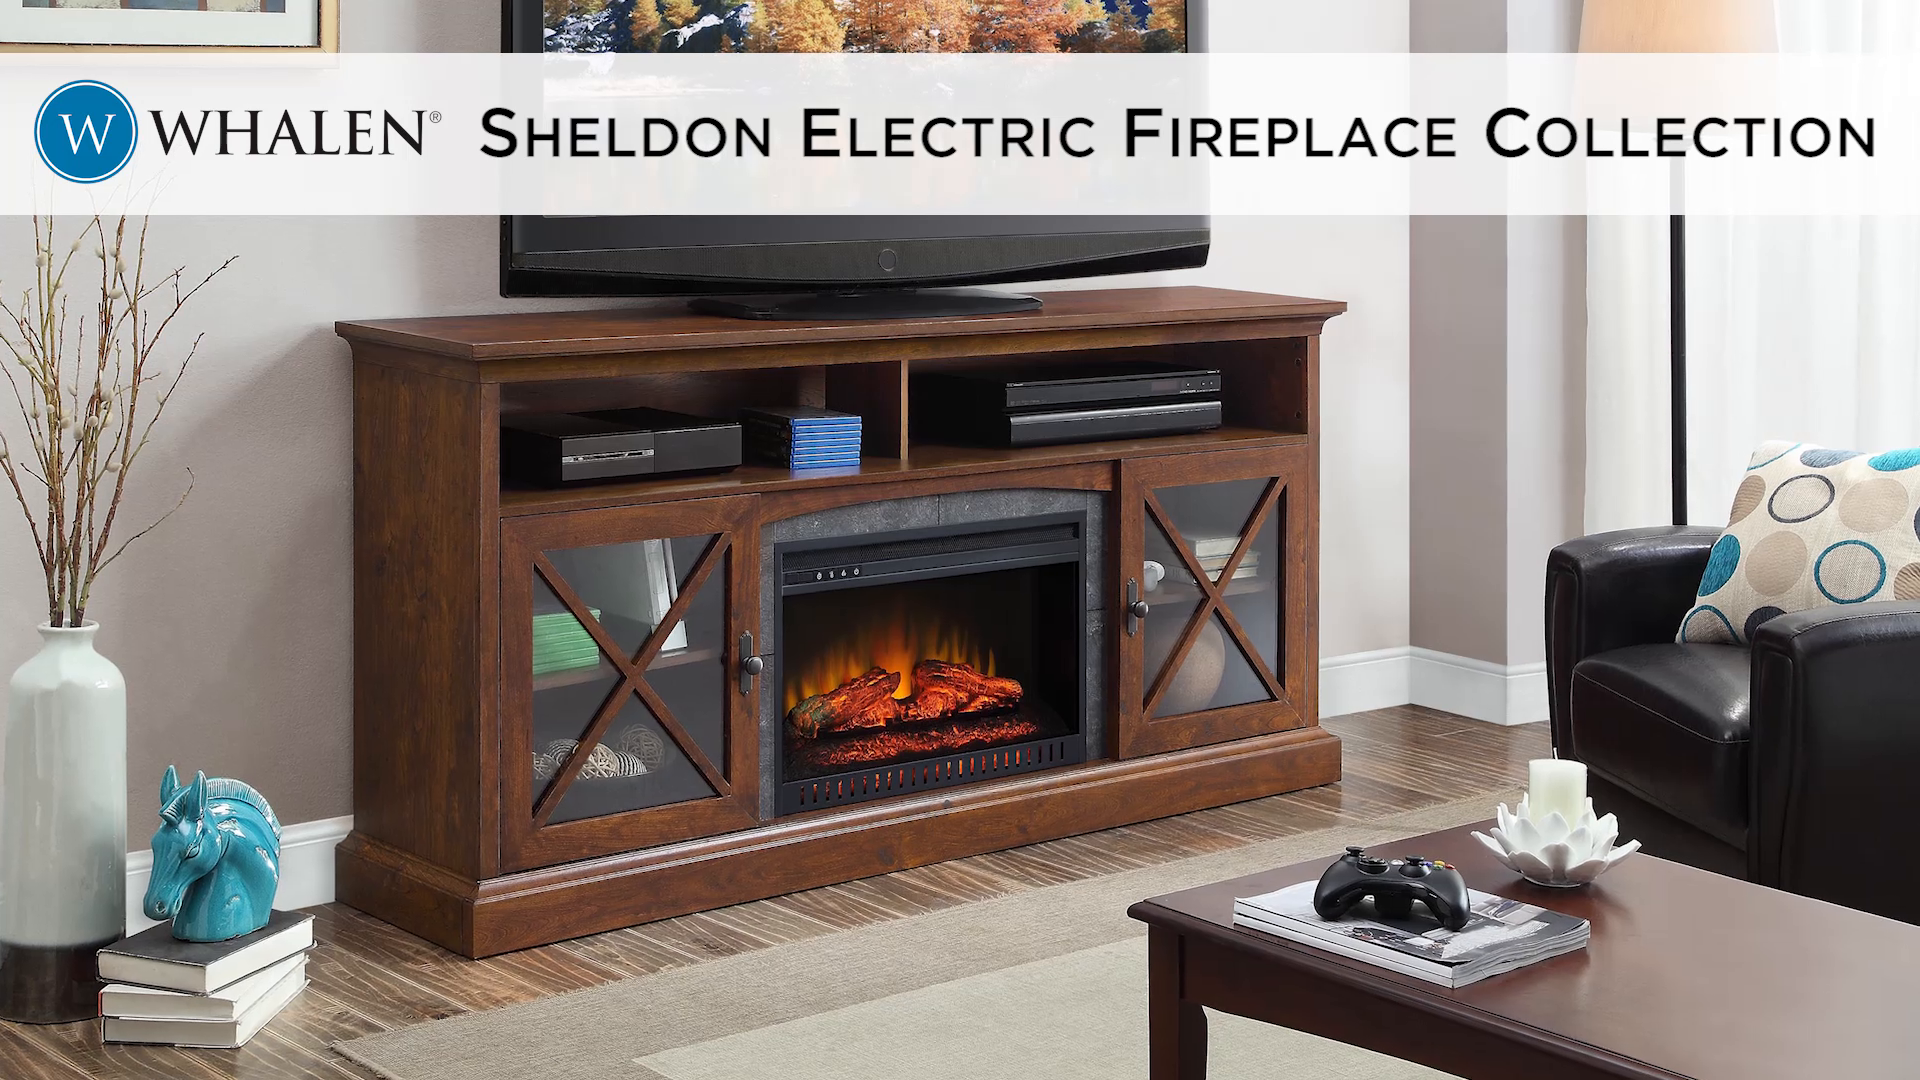 Super Whalen 60 Sheldon Electric Fireplace Download Free Architecture Designs Grimeyleaguecom